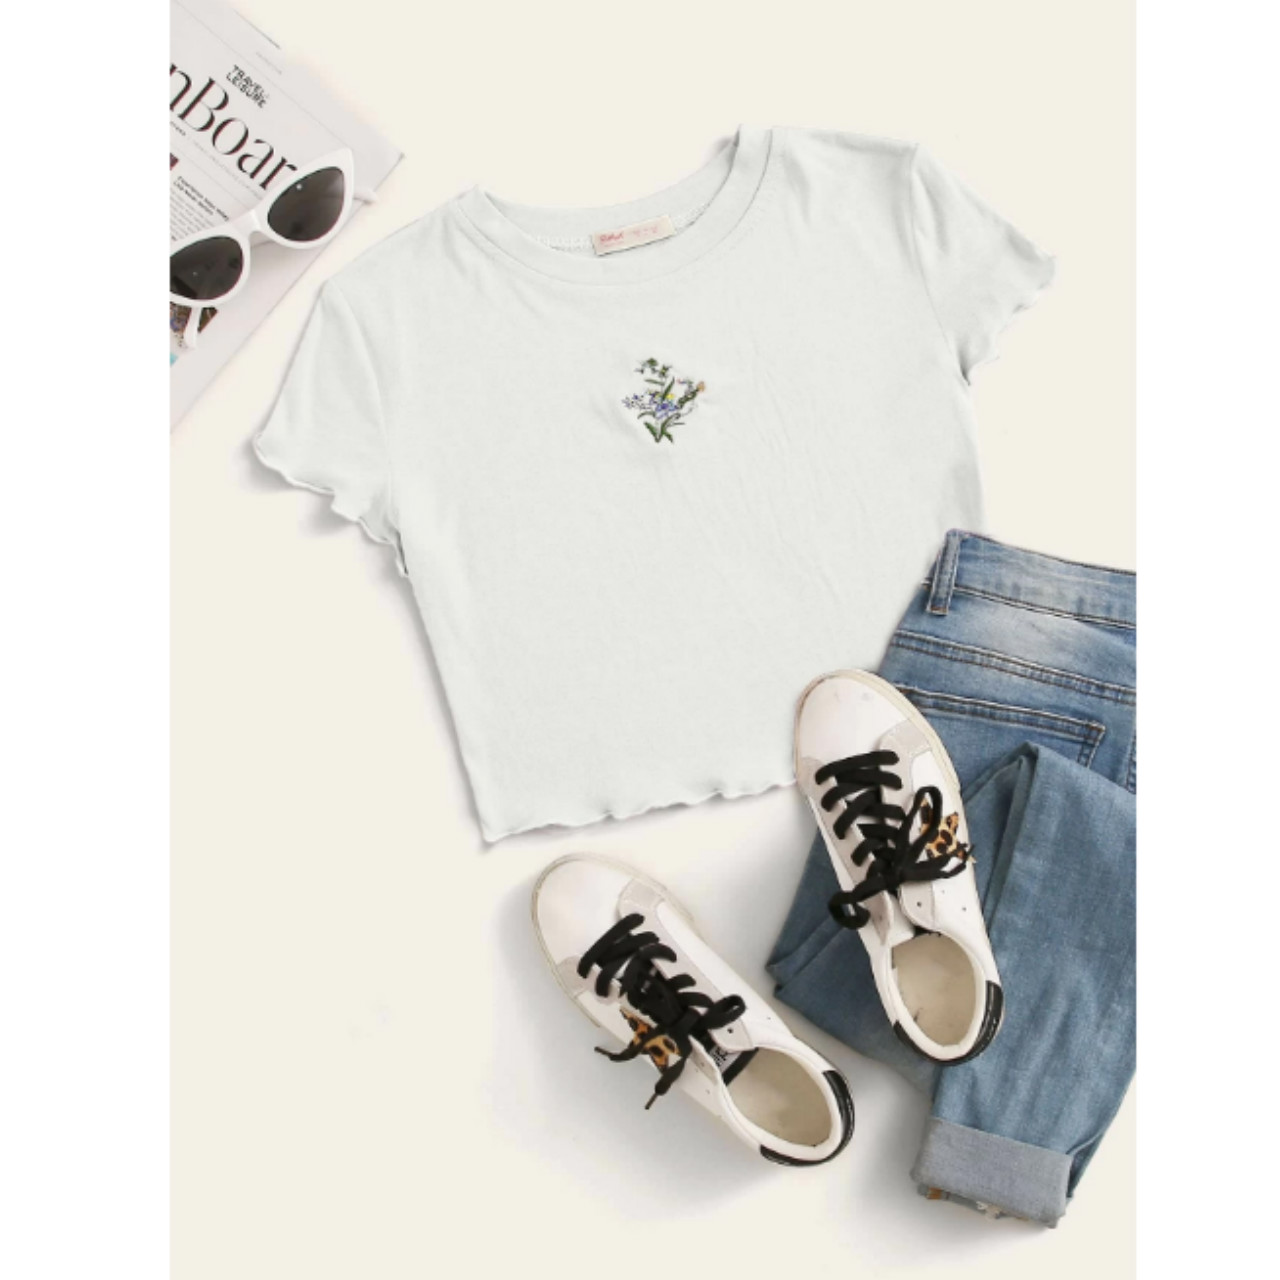 Flower embroidery crop tee s